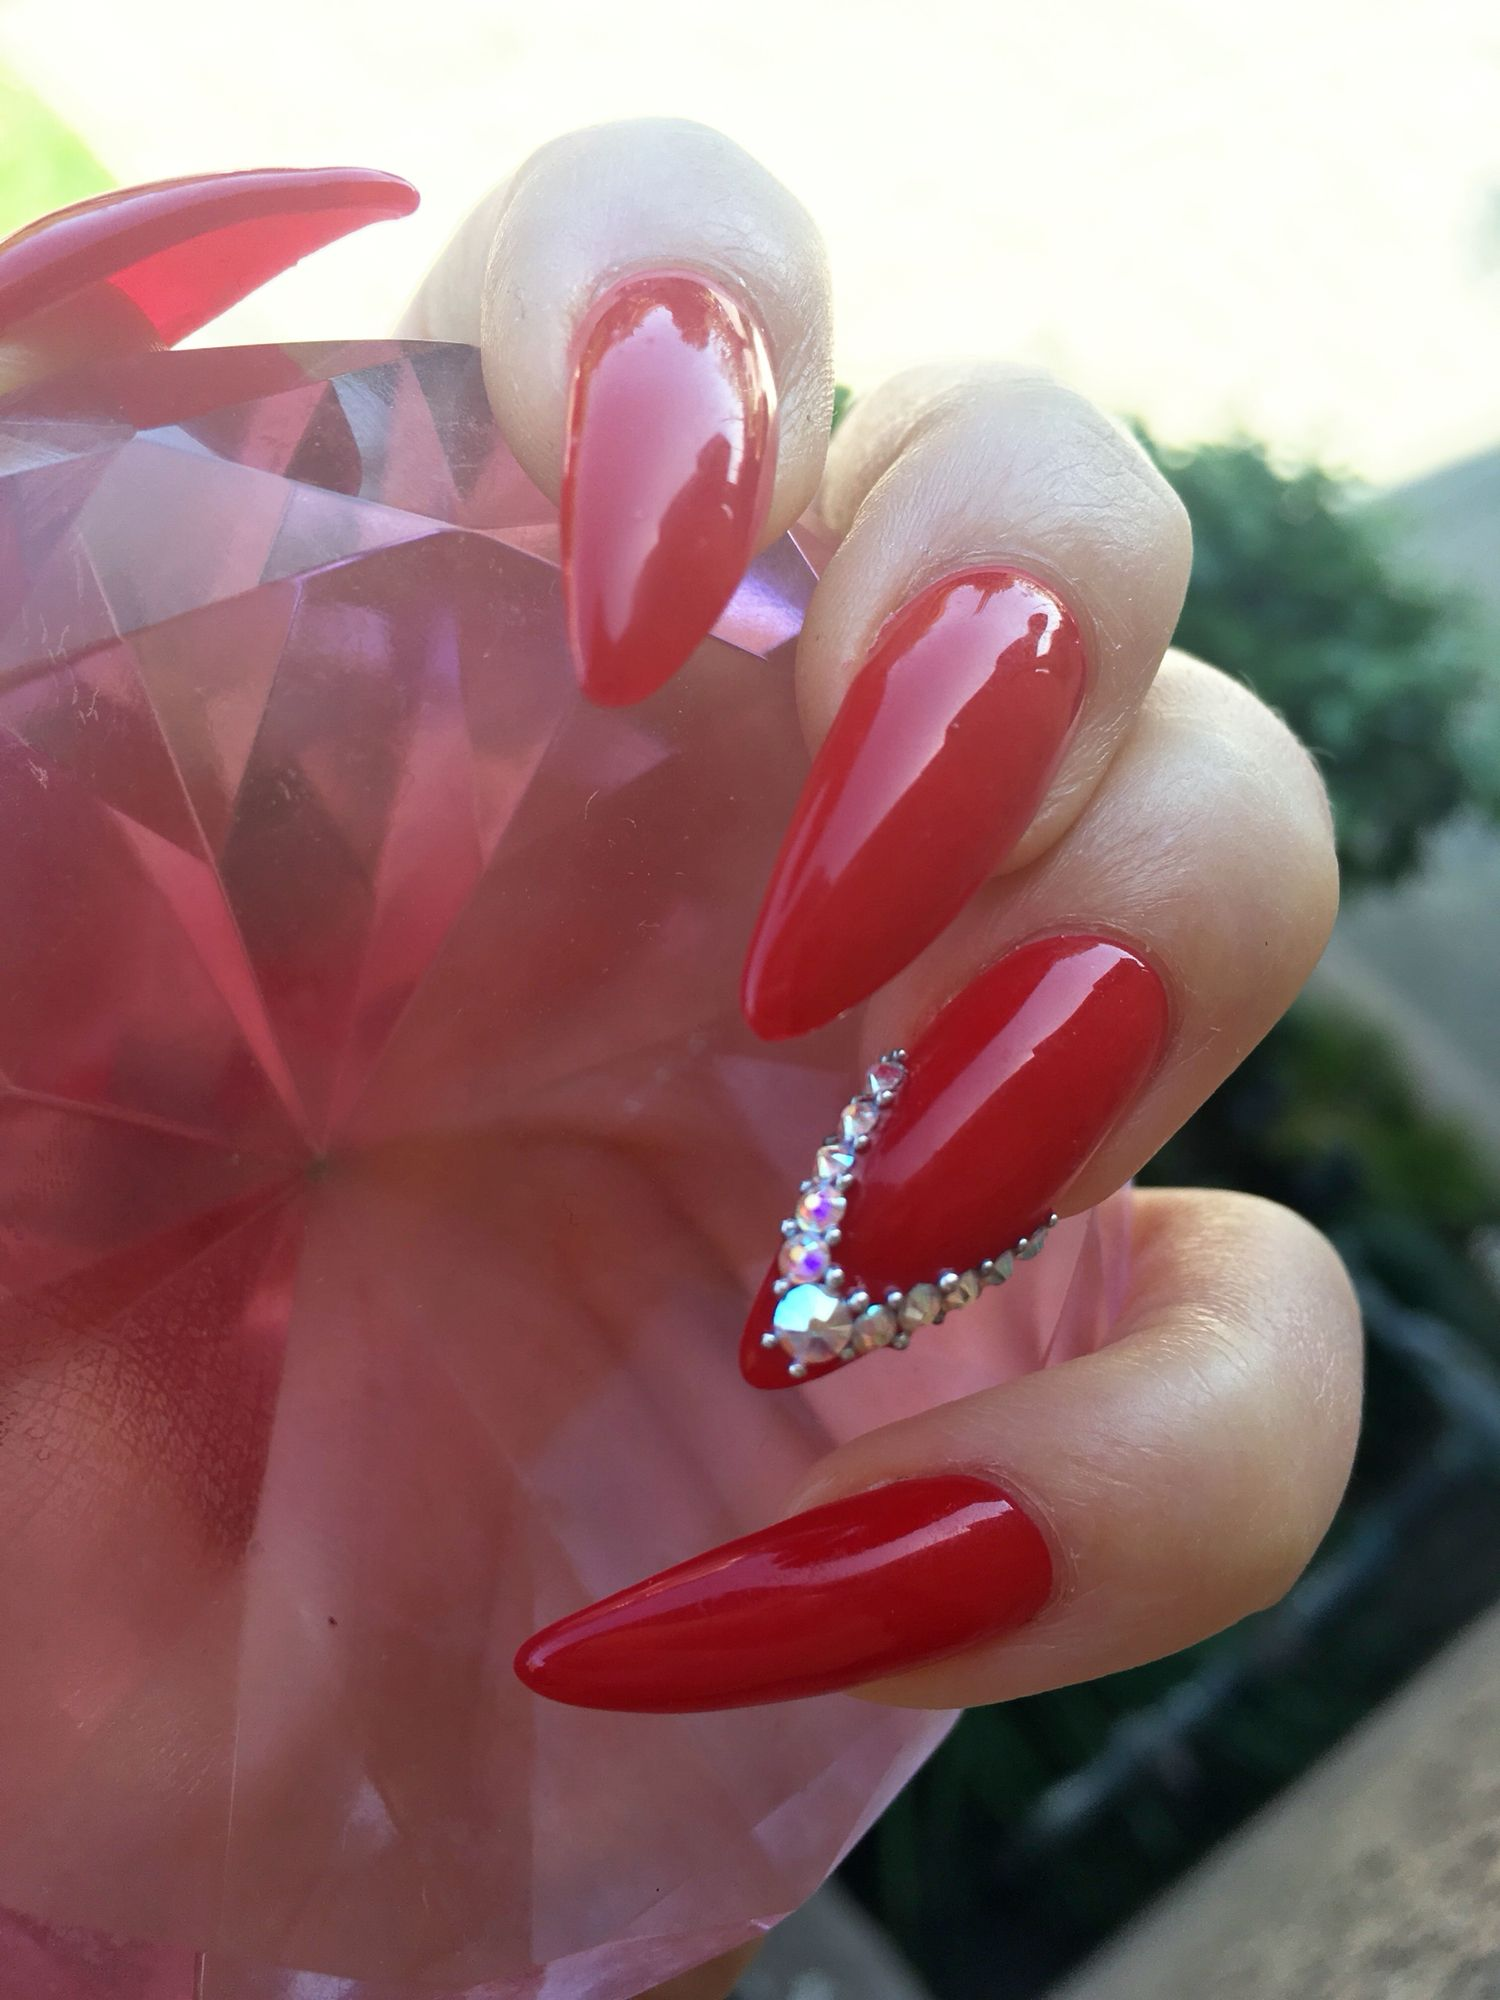 Love my red stiletto claws @ElleRizzles | Nails | Pinterest ...